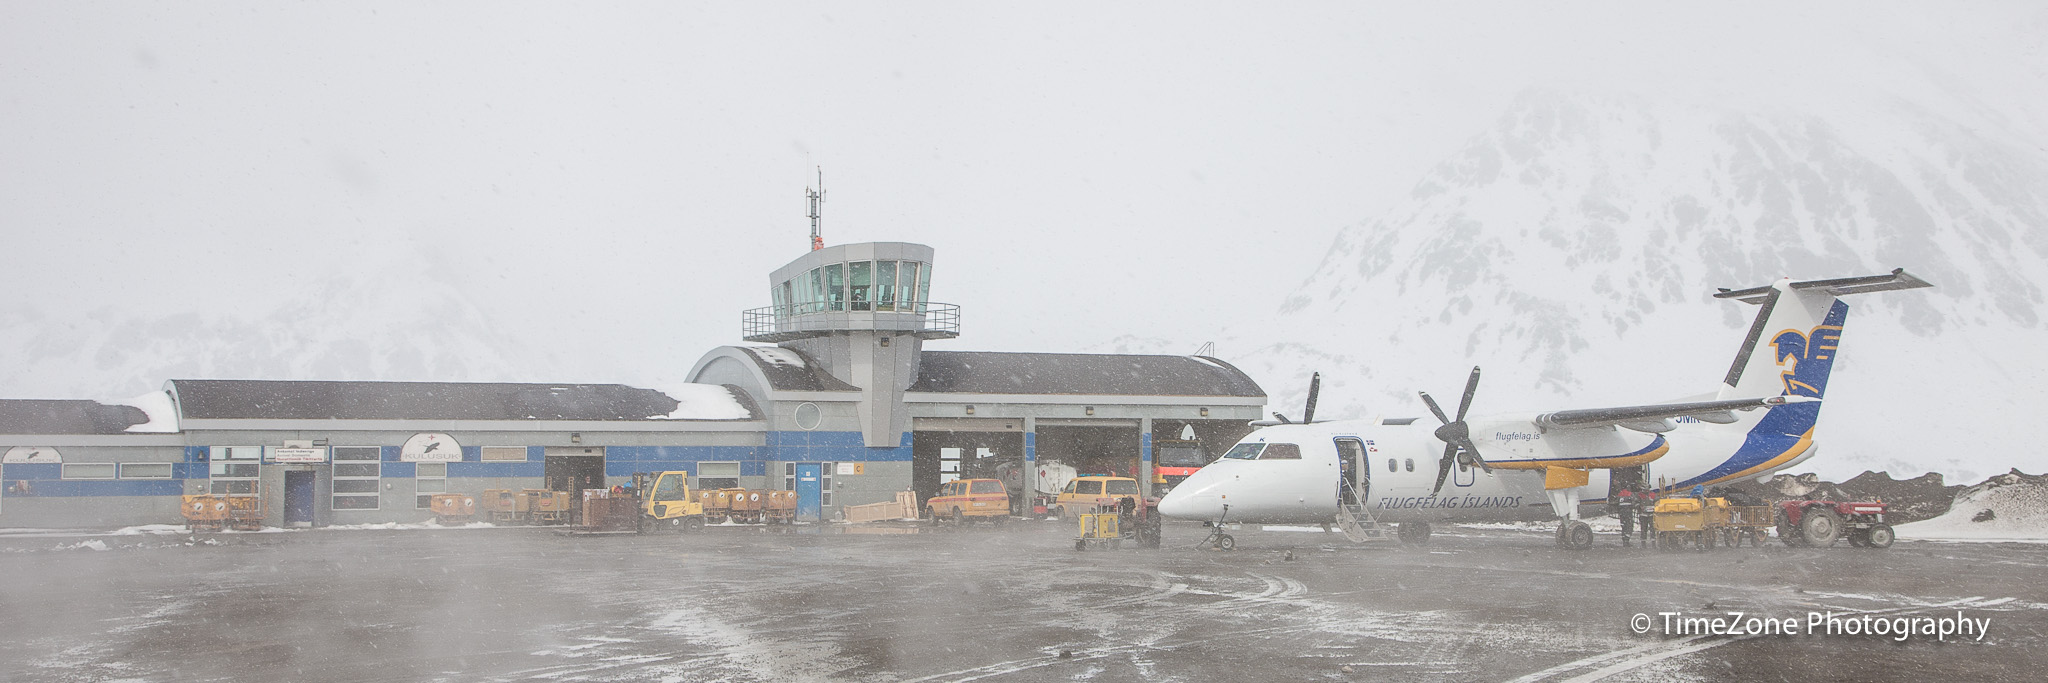 Air Iceland Dash-8 200 in front of the terminal in Kulusuk on a foggy and snowy winter day in May 2012.